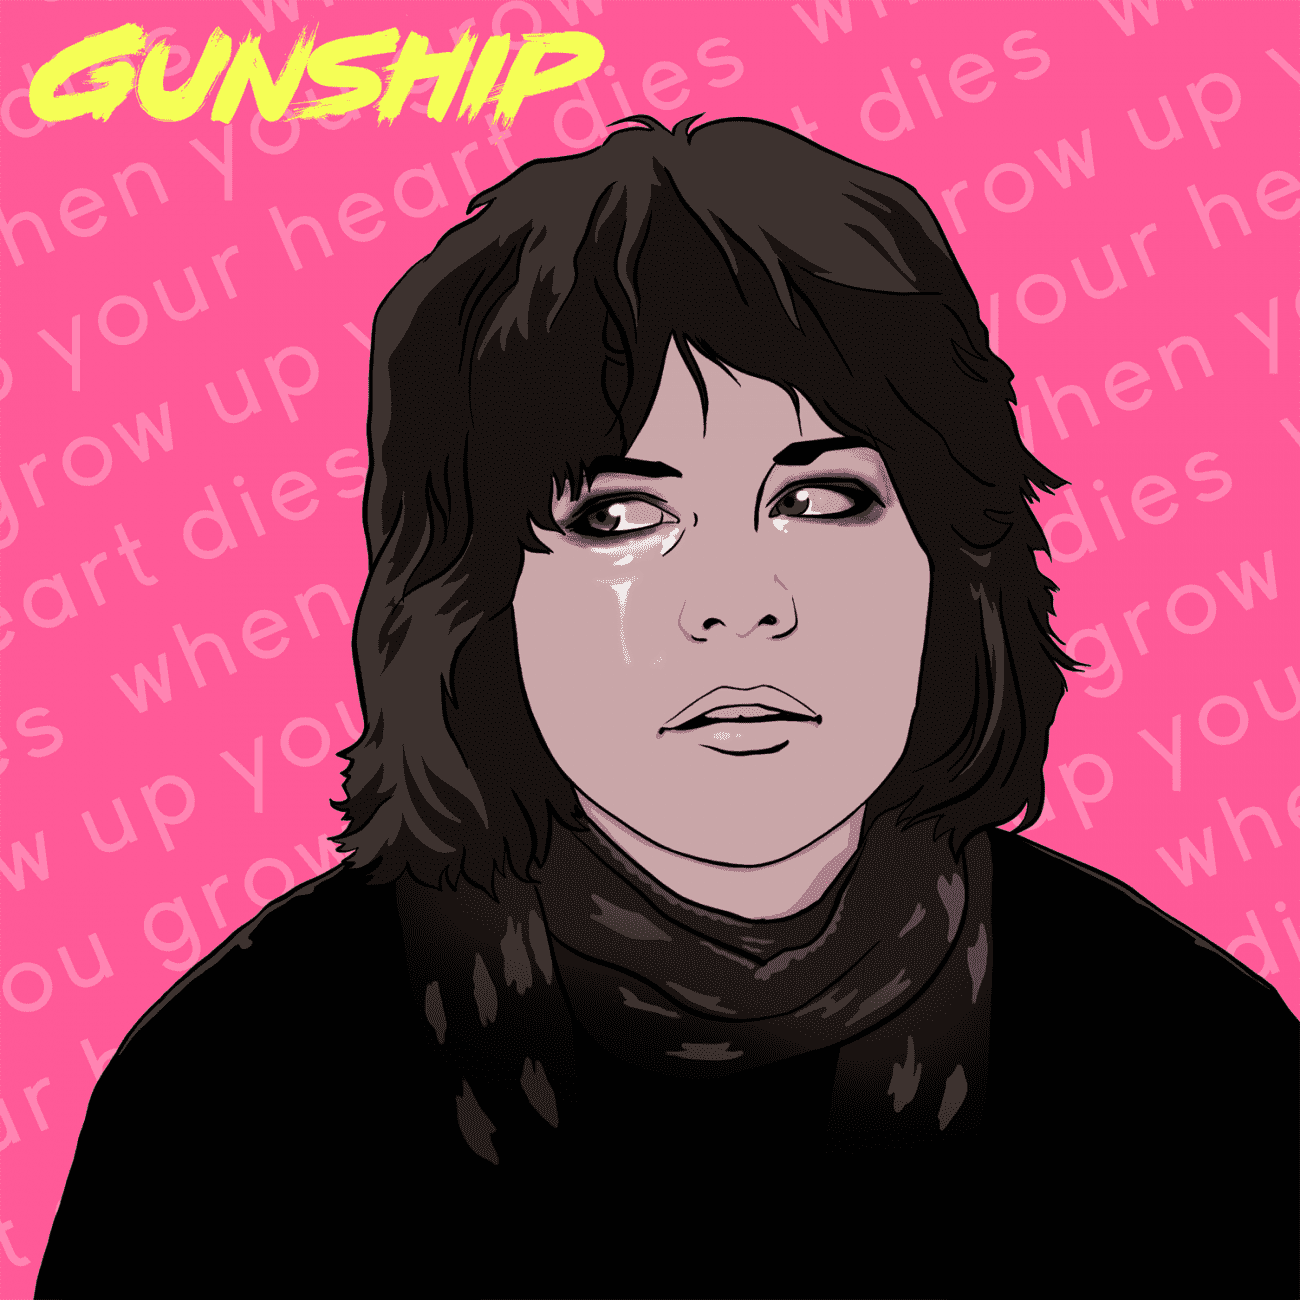 GUNSHIPHeartDiesCover01 1500x1500 1300x1300 - GUNSHIP - When You Grow Up, Your Heart Dies